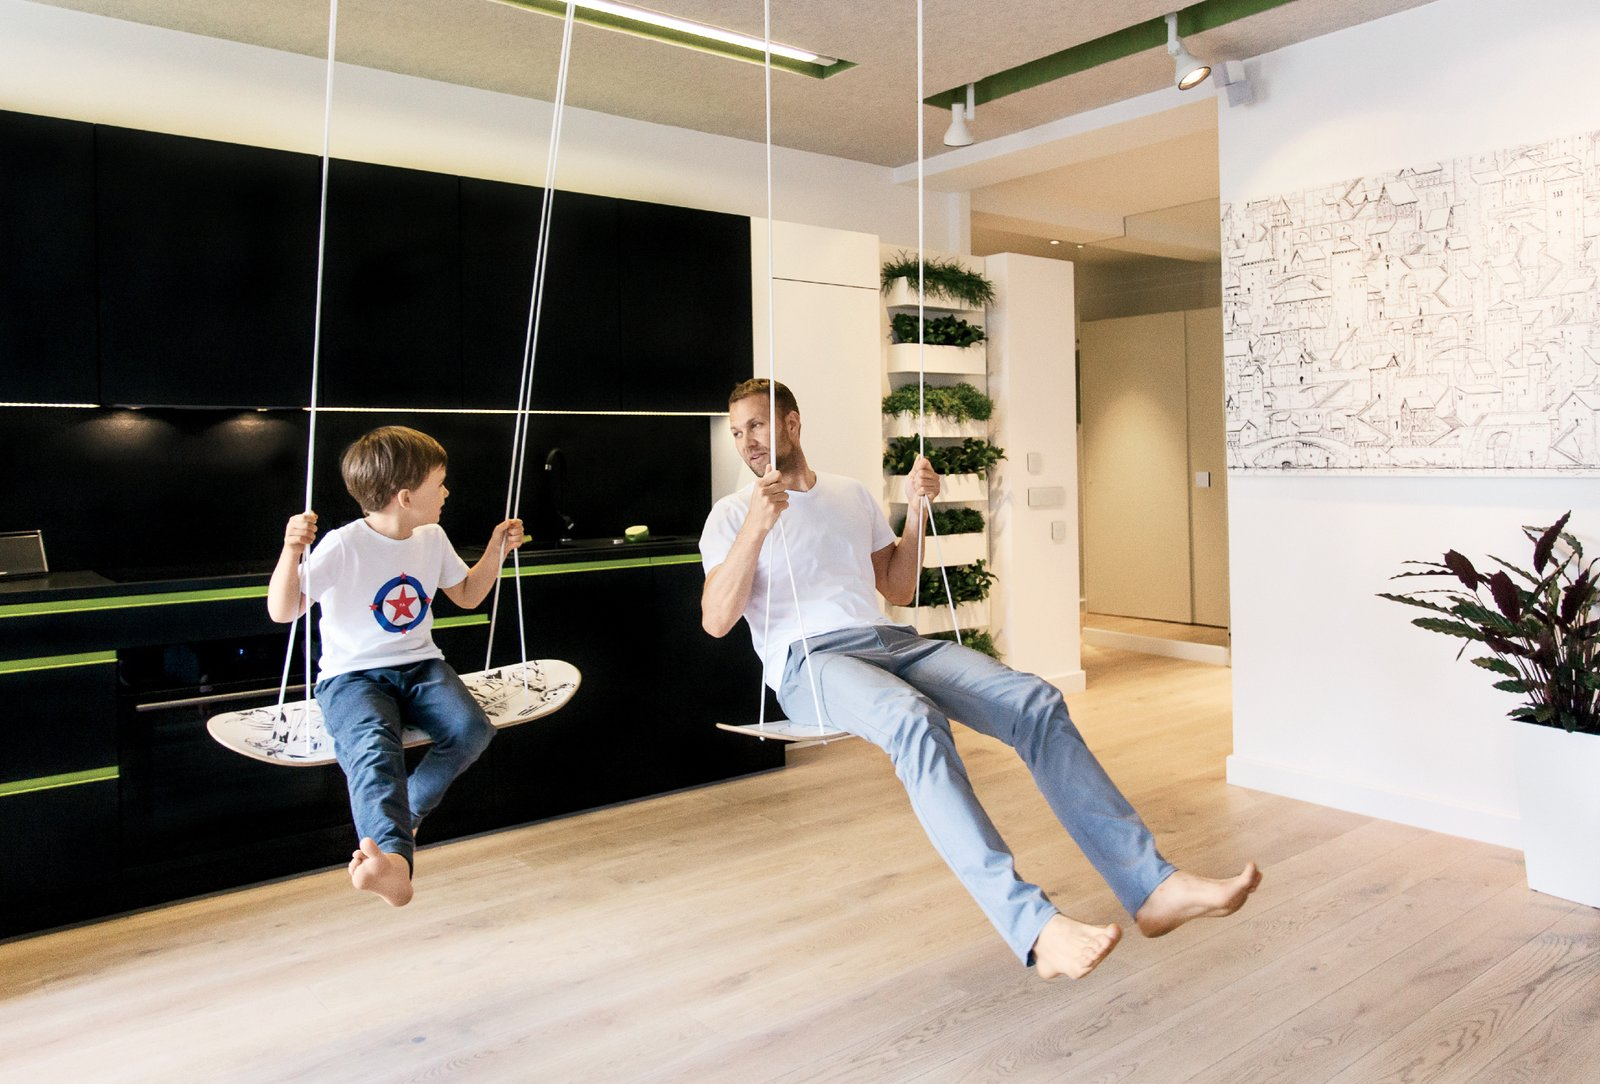 """Living Room, Track Lighting, and Light Hardwood Floor Inspired by skateboards, the swing seats are made of European oak. """"At first we tried bigger boards, but you can't sit on them,"""" Parzyszek says.  Photo 4 of 7 in 7 Minimalist Apartments Around The World from This Tiny Warsaw Studio Instantly Changes from Office to Playroom"""